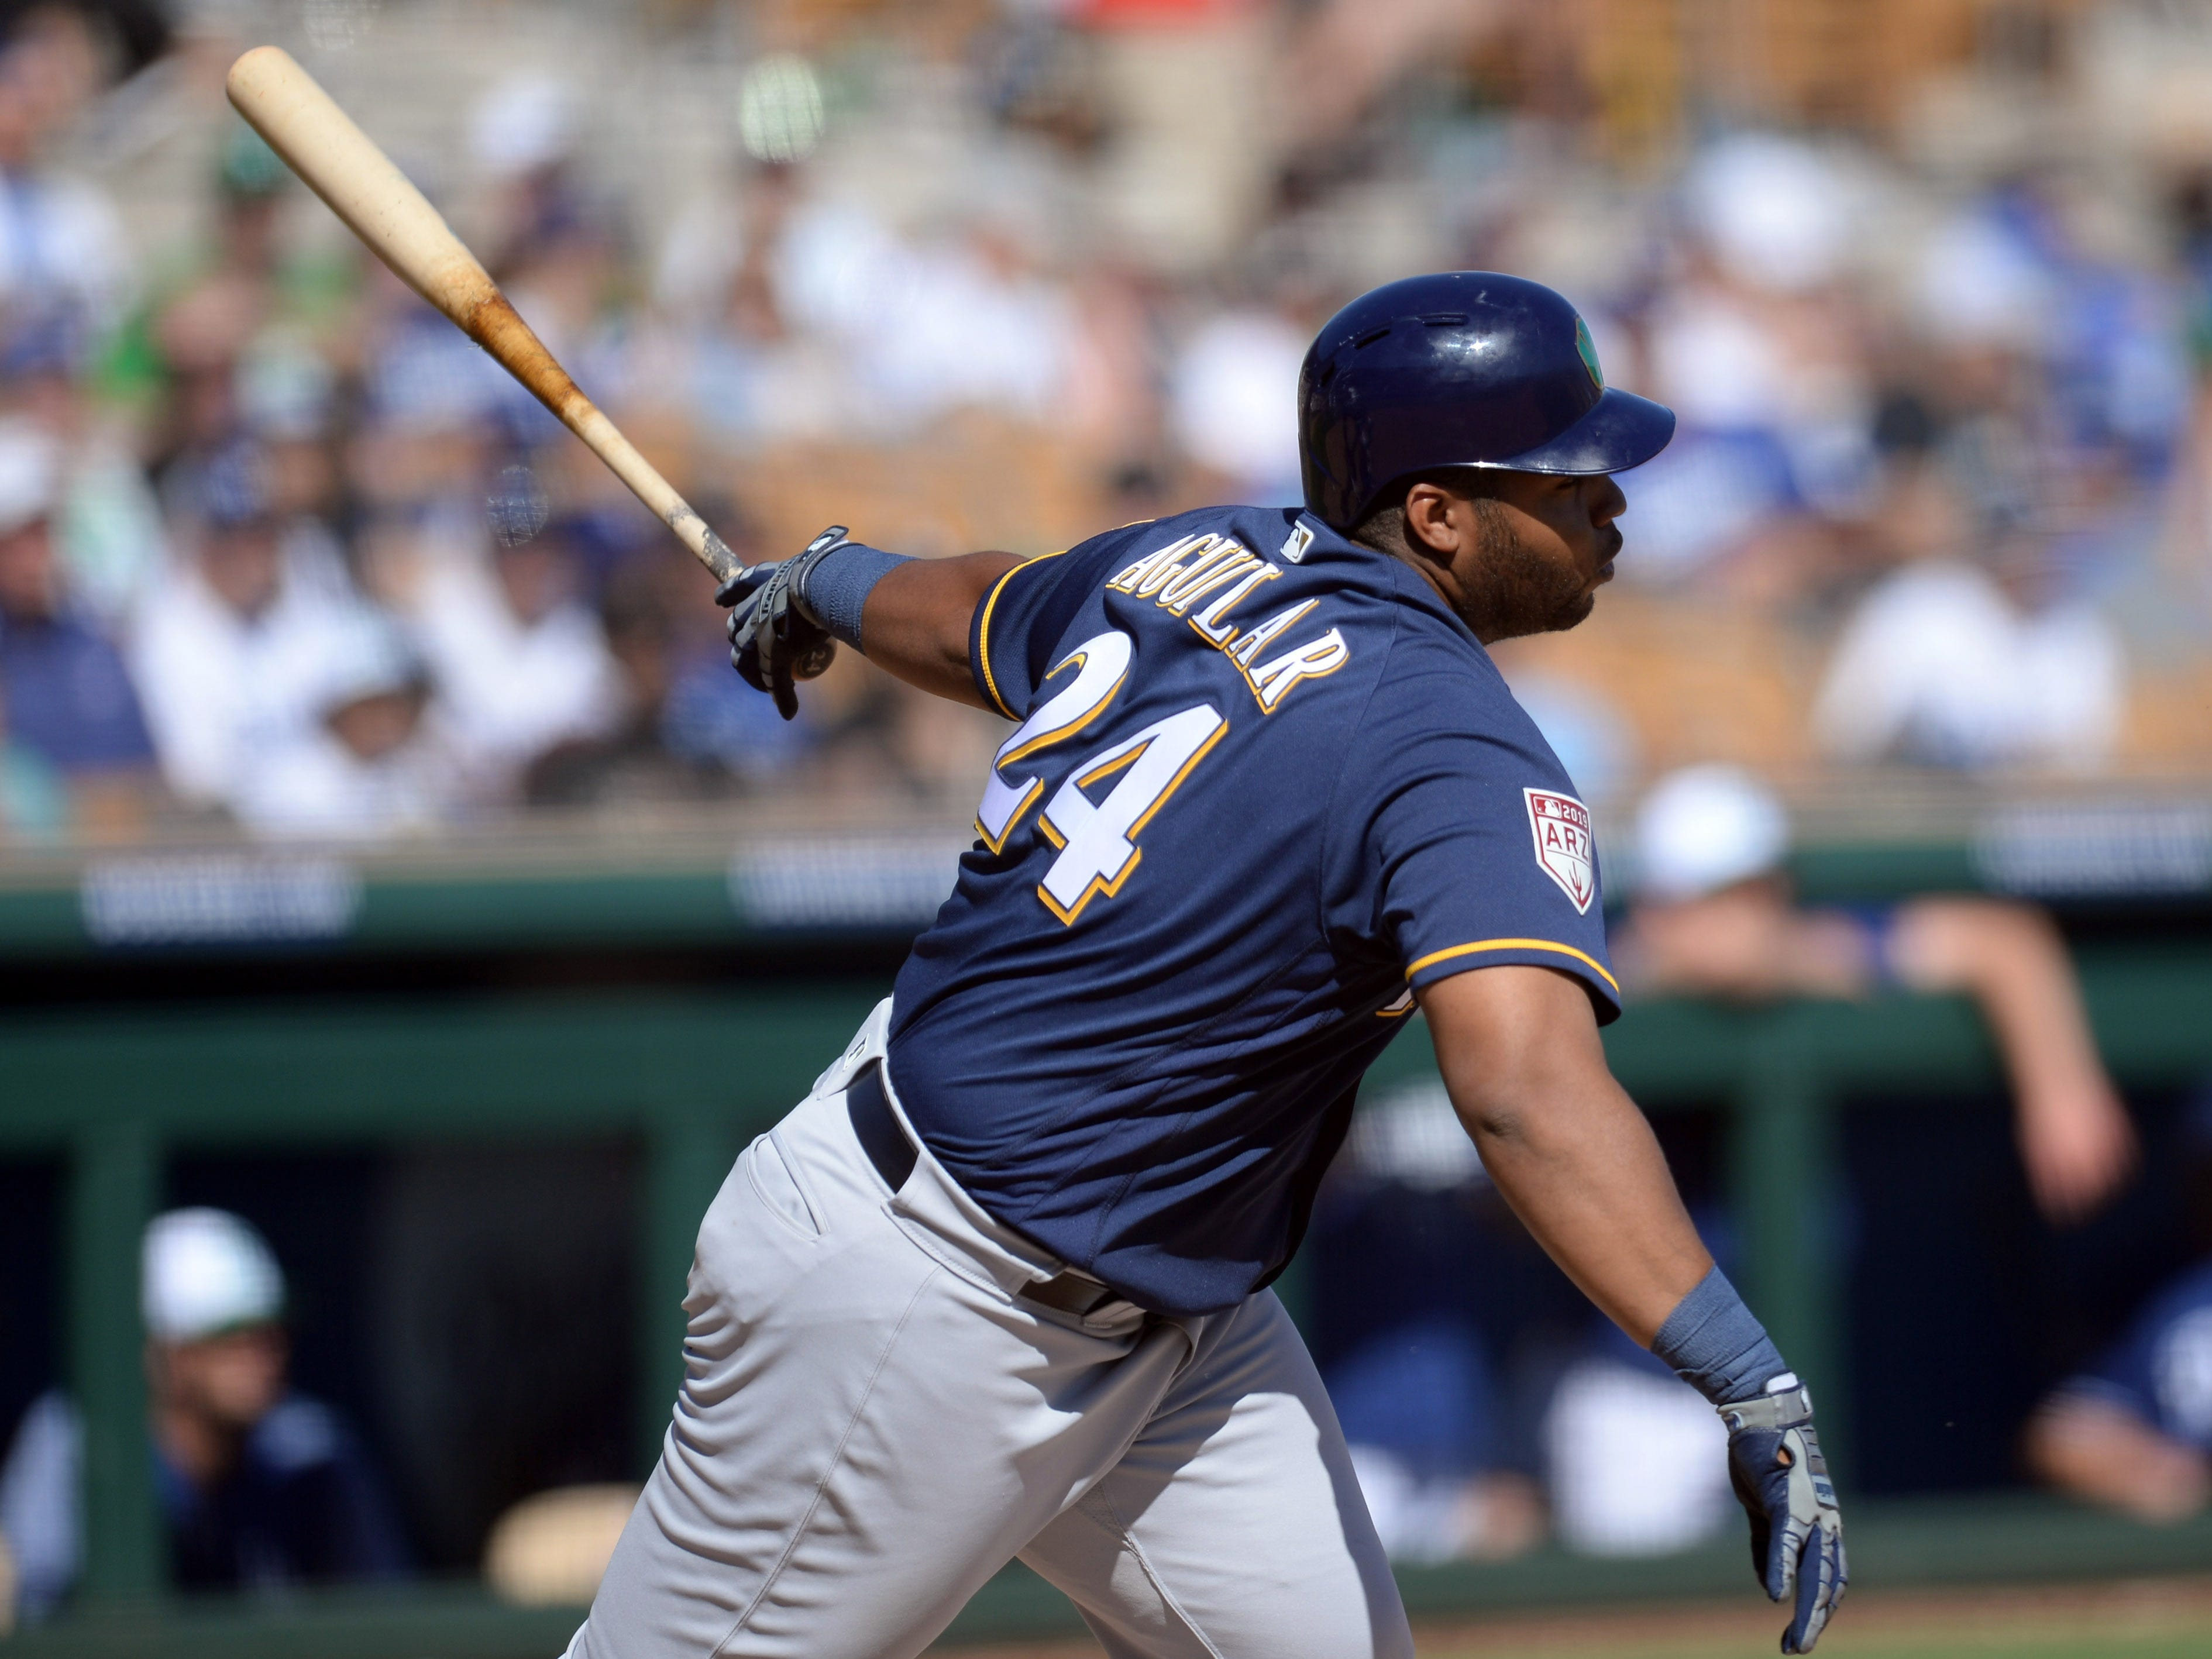 Brewers first baseman Jesus Aguilar reaches base with his second single on the day against the Dodgers in the fifith inning Sunday.